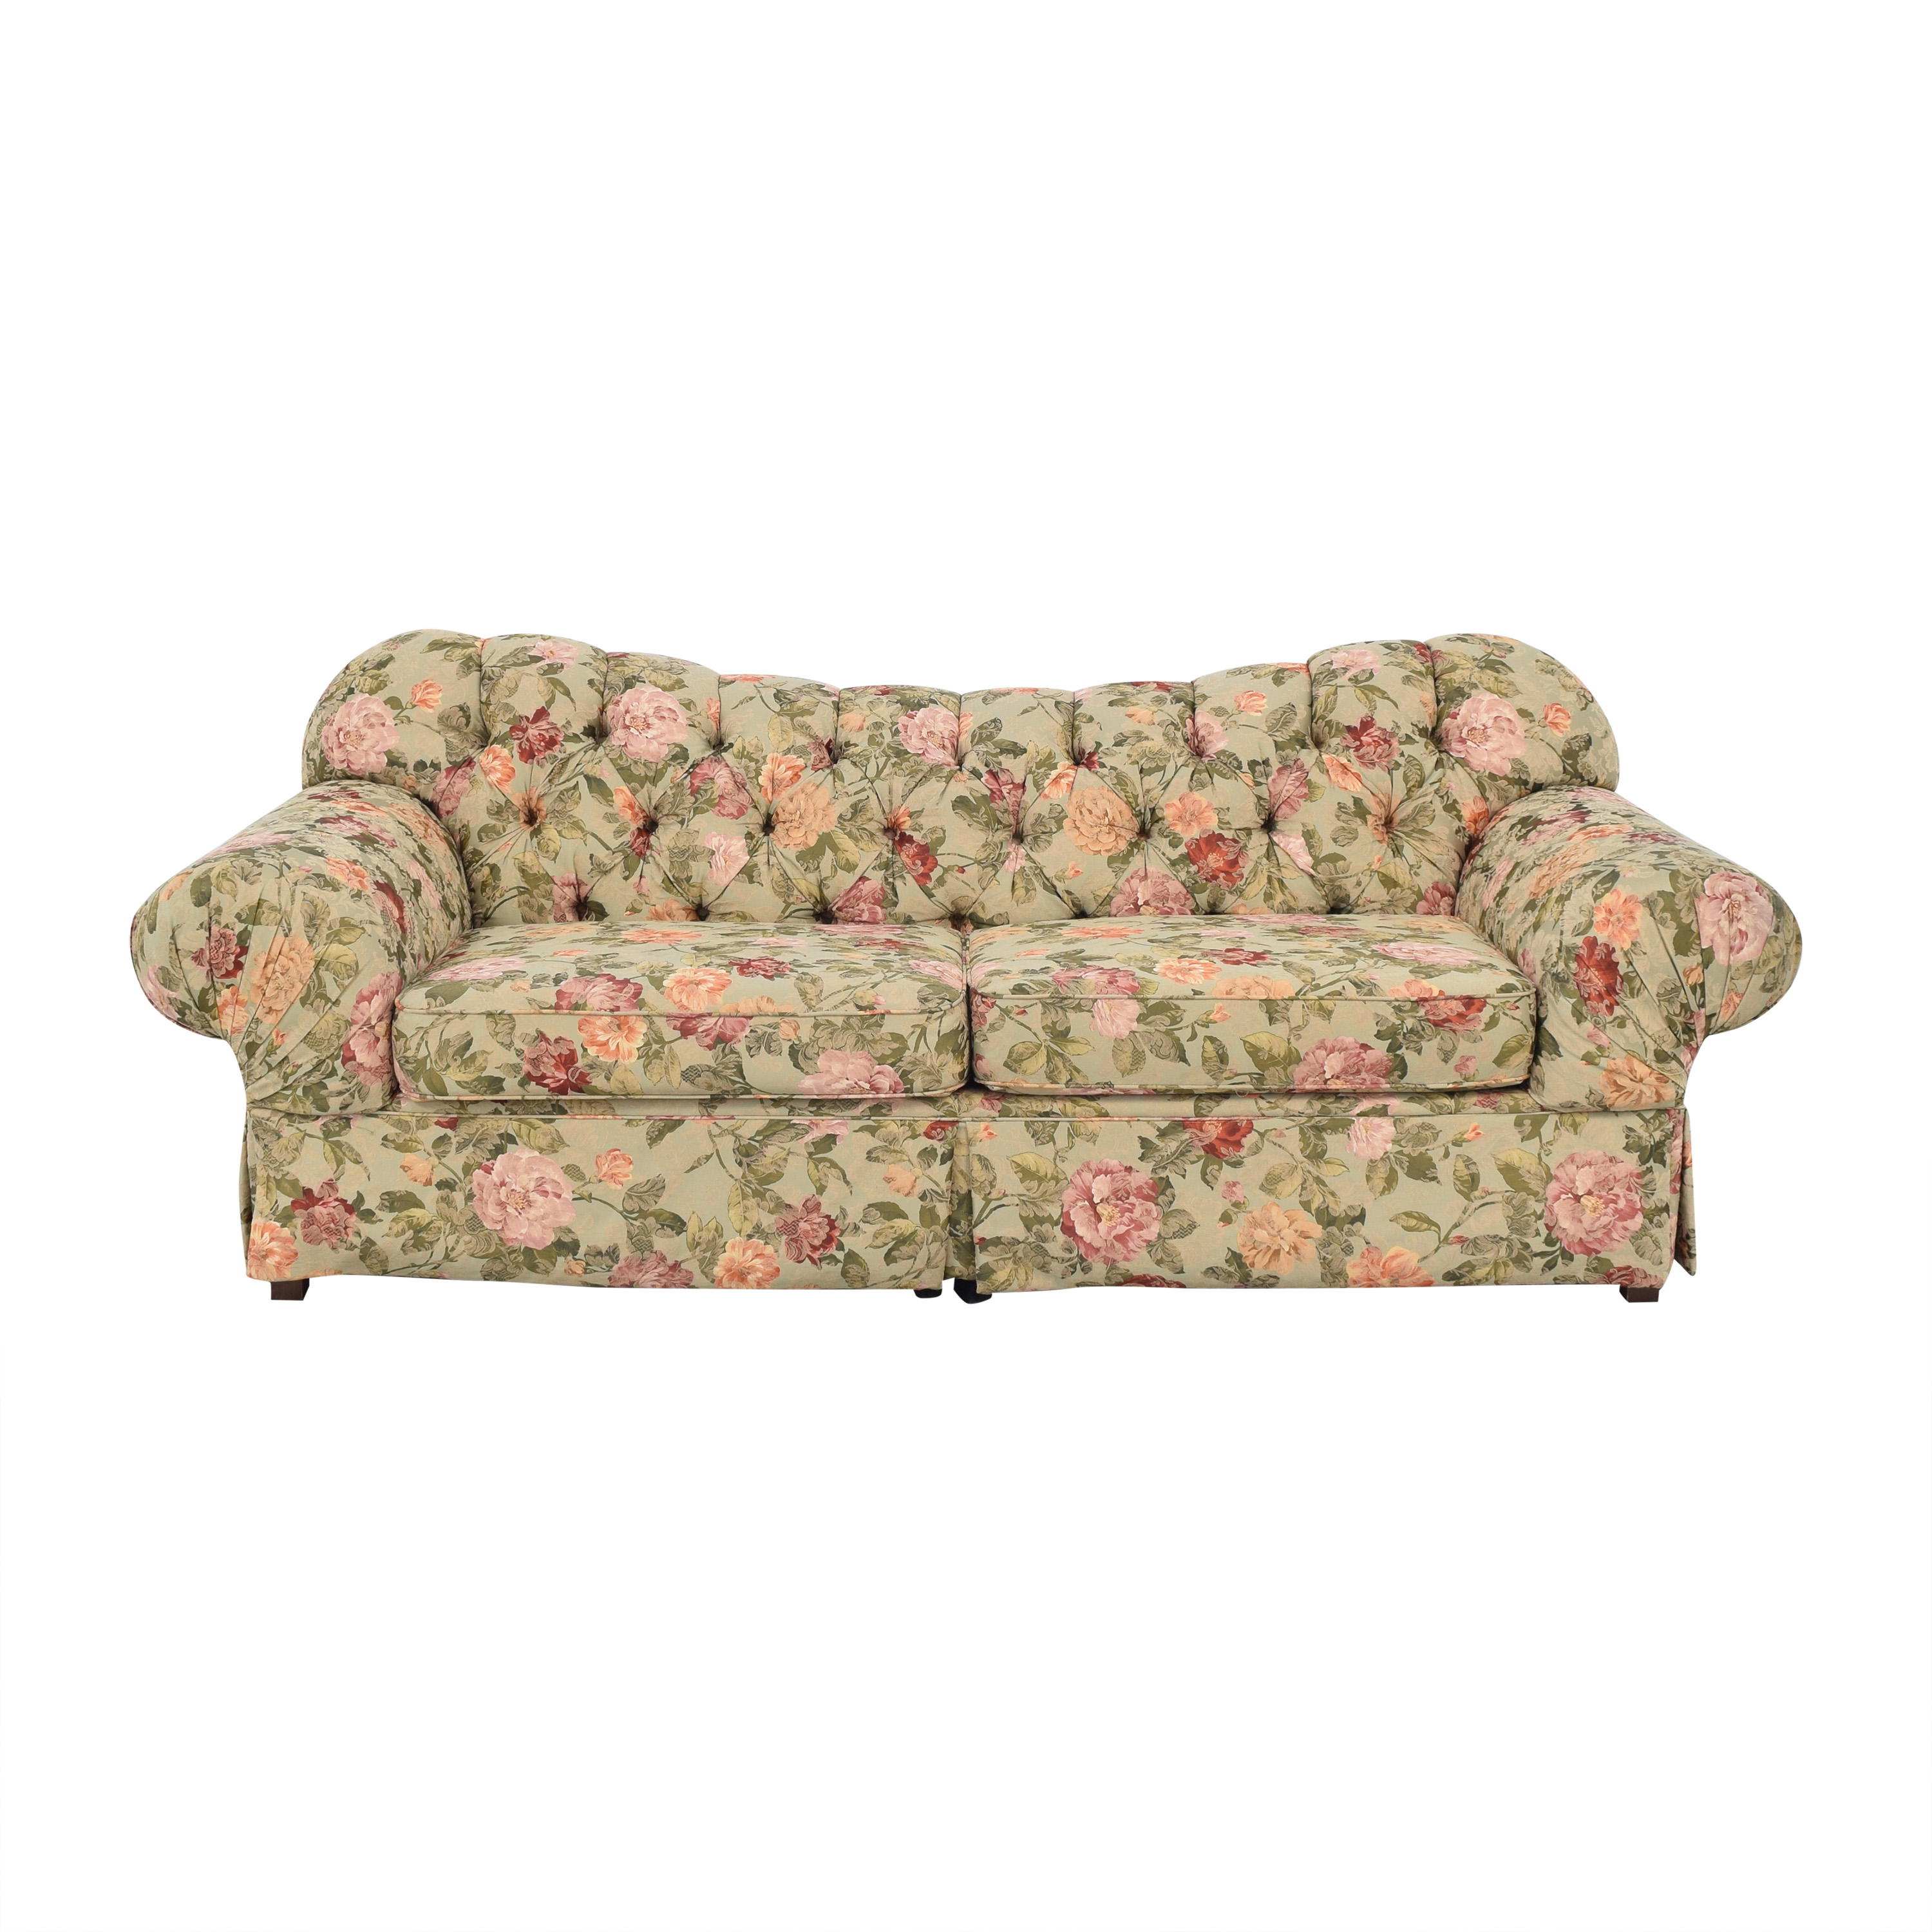 England Furniture England Furniture Sofa nj